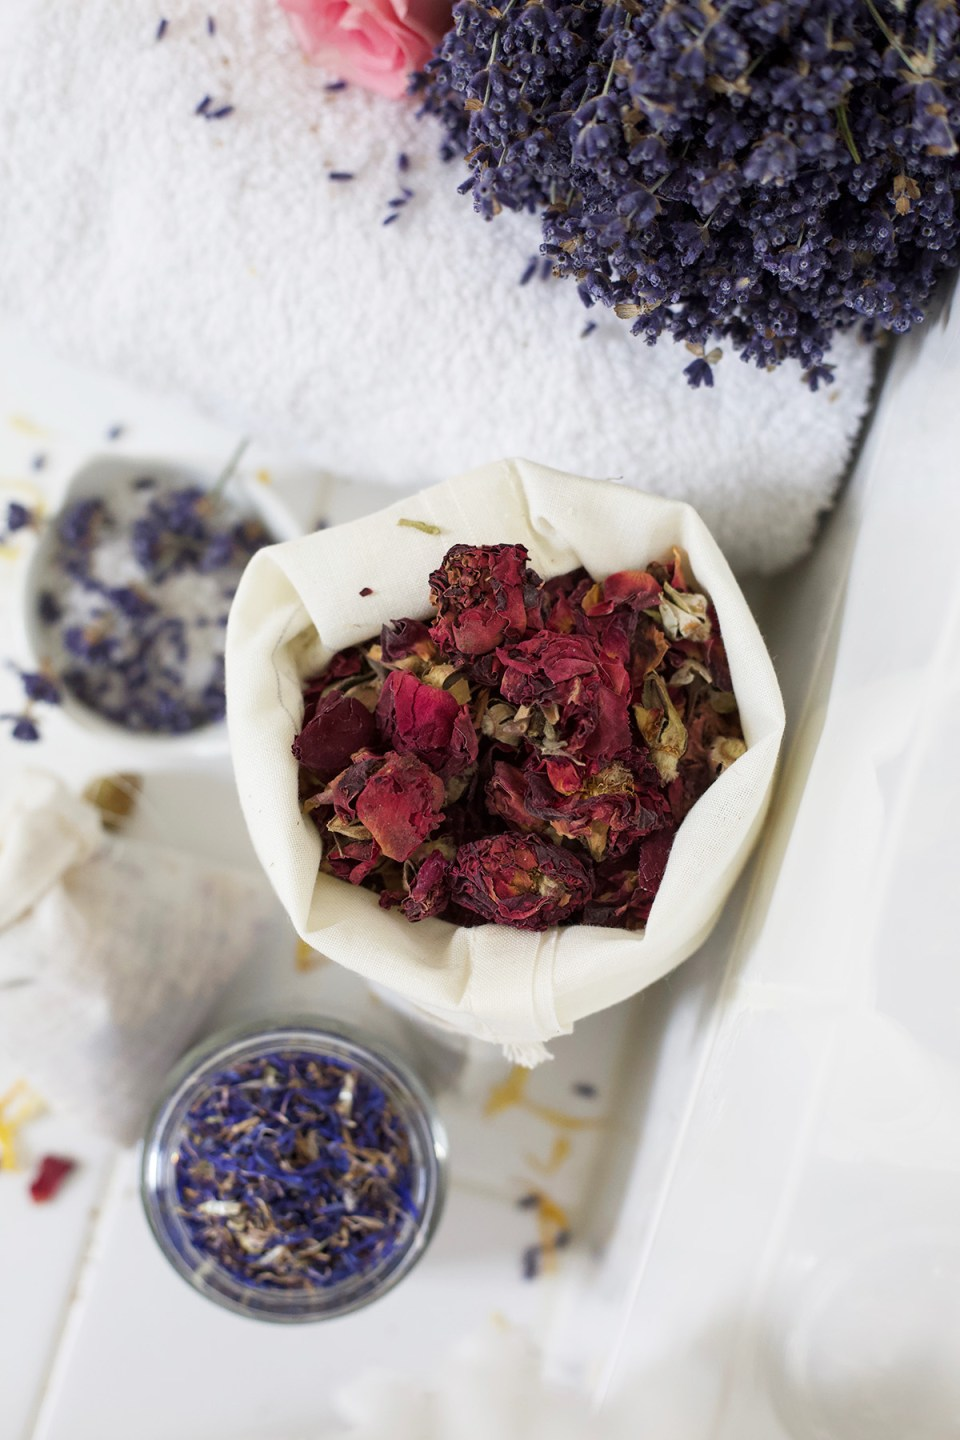 Herbal Aphrodisiacs: What They Are & How to Use Them   Herbal Academy   Herbal aphrodisiacs have been sought after, admired, and rumored for their effects on libido — but do they work? Learn what they are and how to use them!